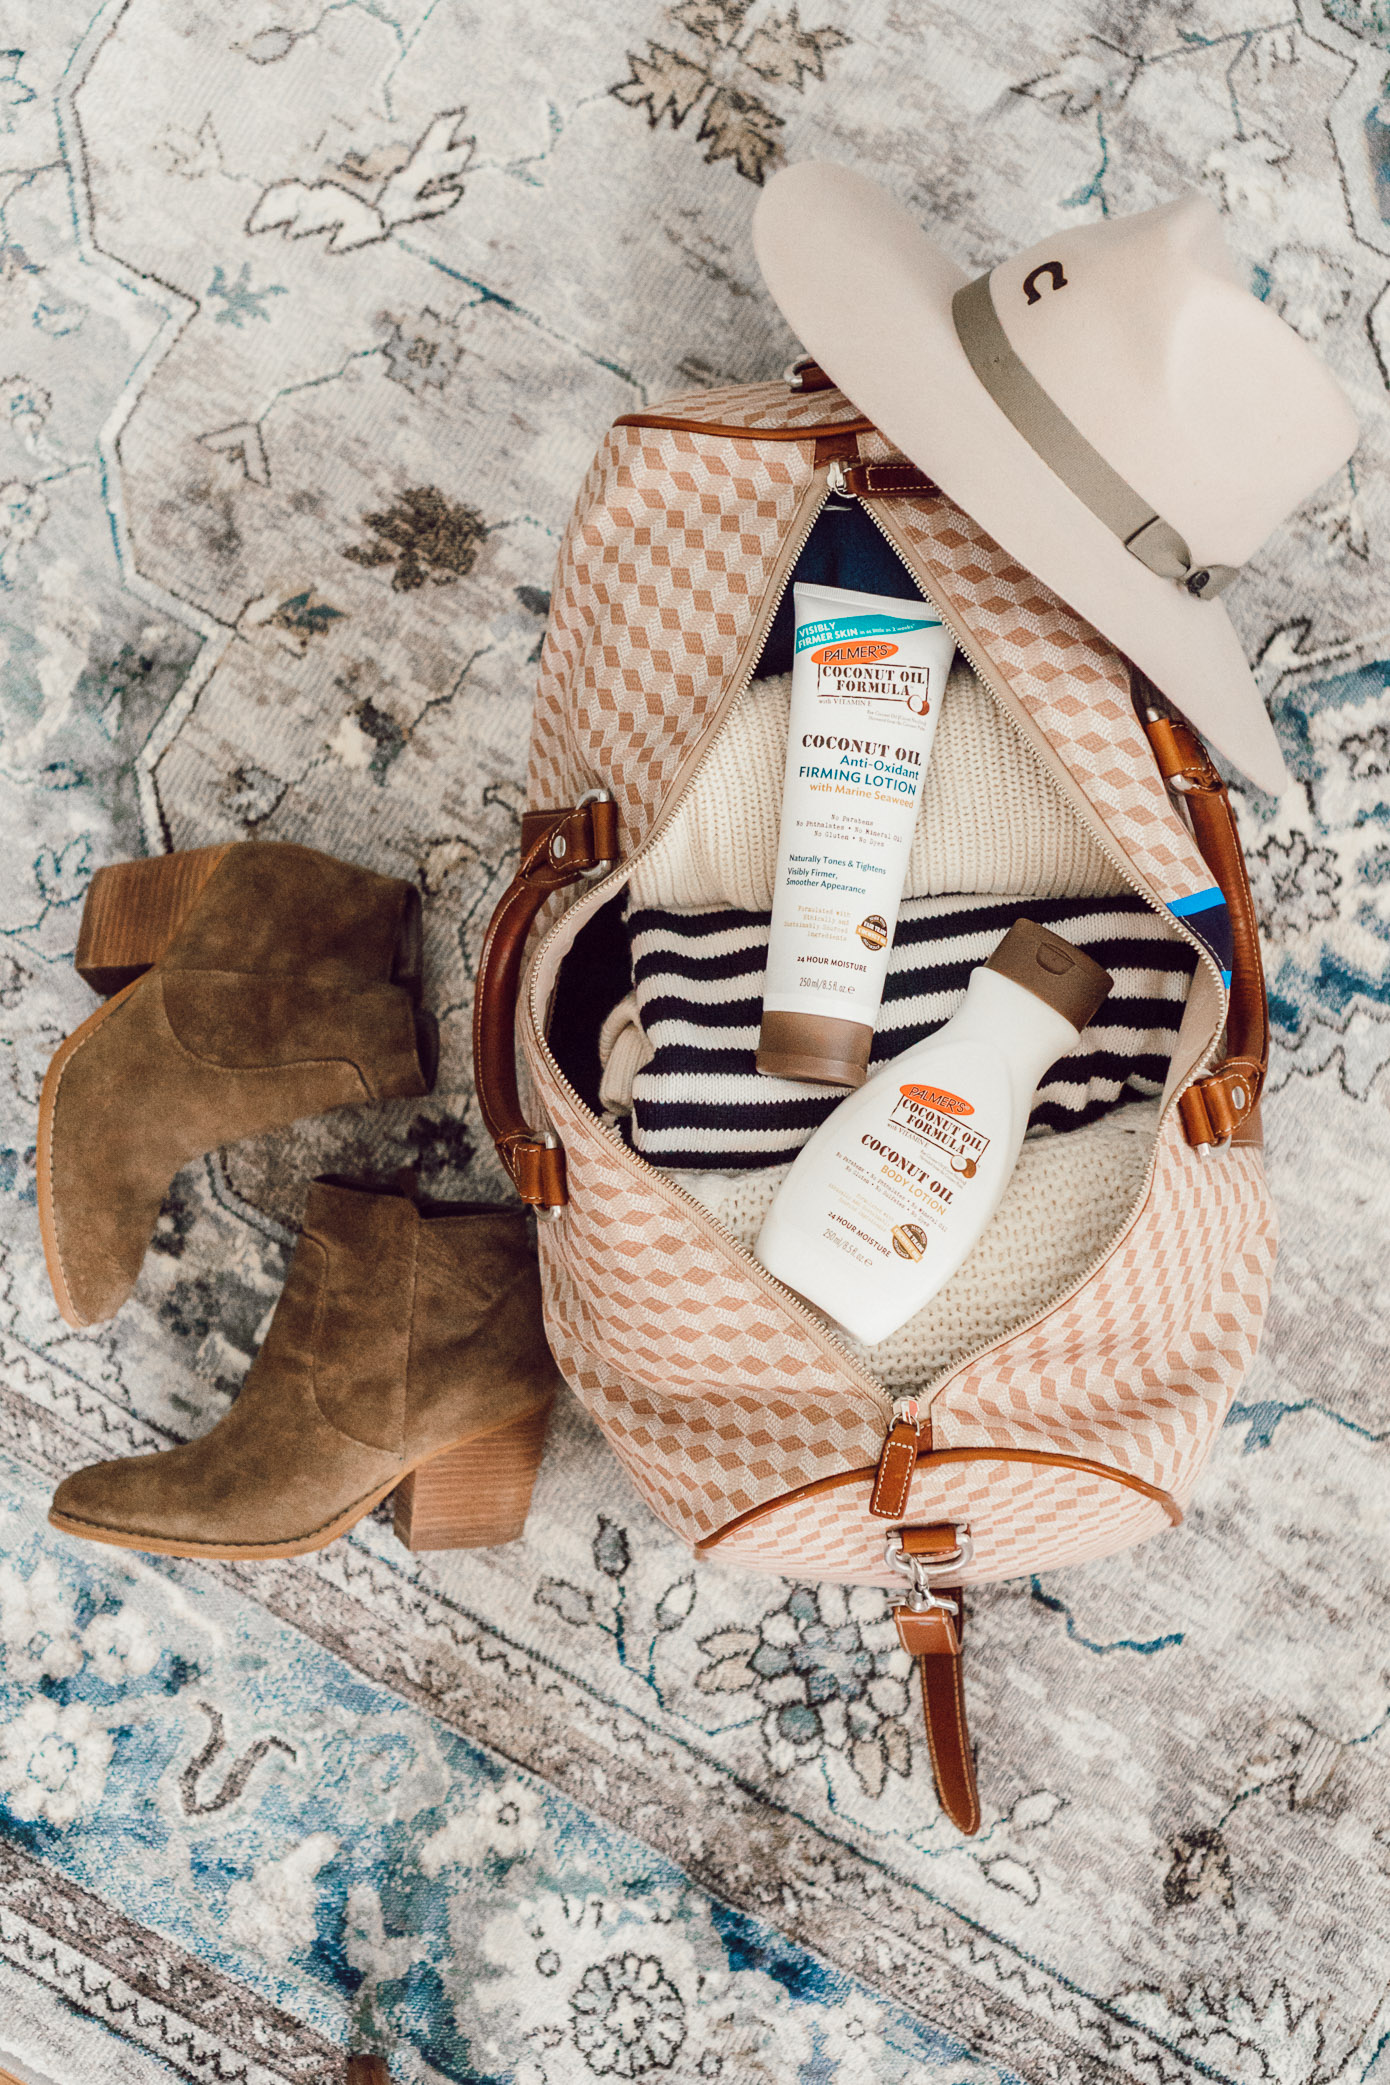 Palmer's Coconut Oil Skincare Products | Five Ways to Hydrate Your Skin While Traveling featured on Louella Reese